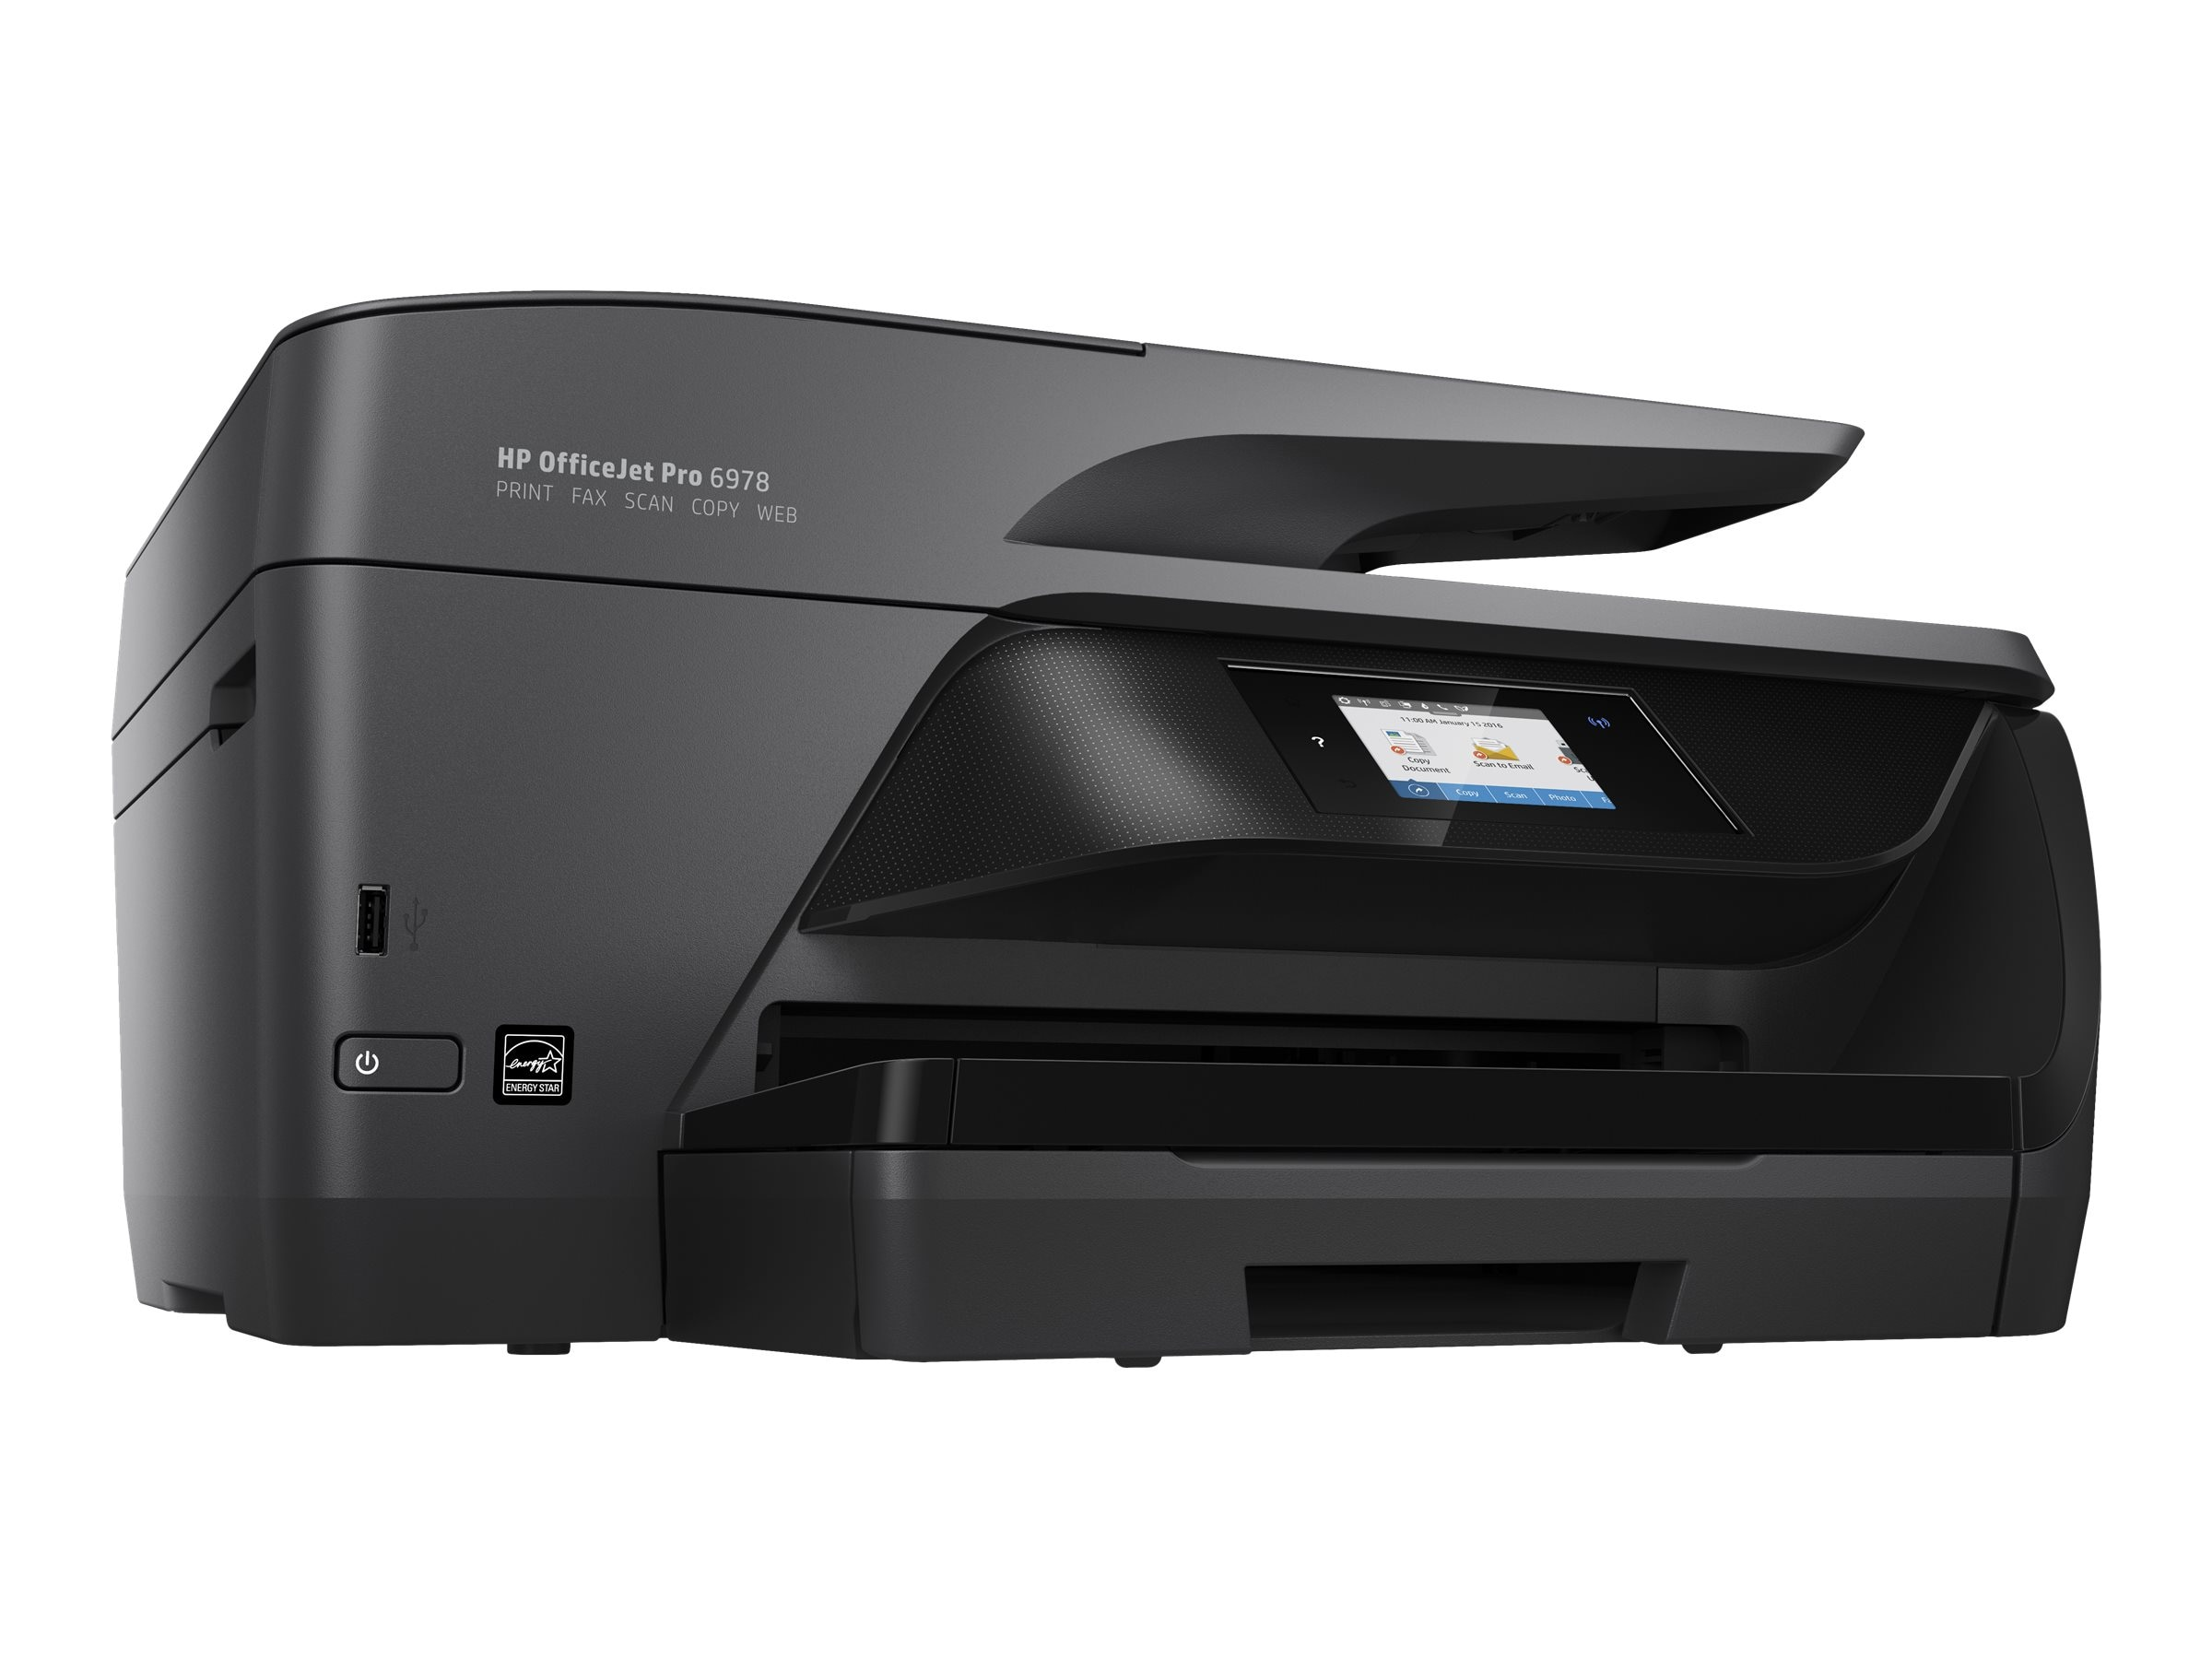 HP OfficeJet Pro 6978 All-in-One Printer, T0F29A#B1H